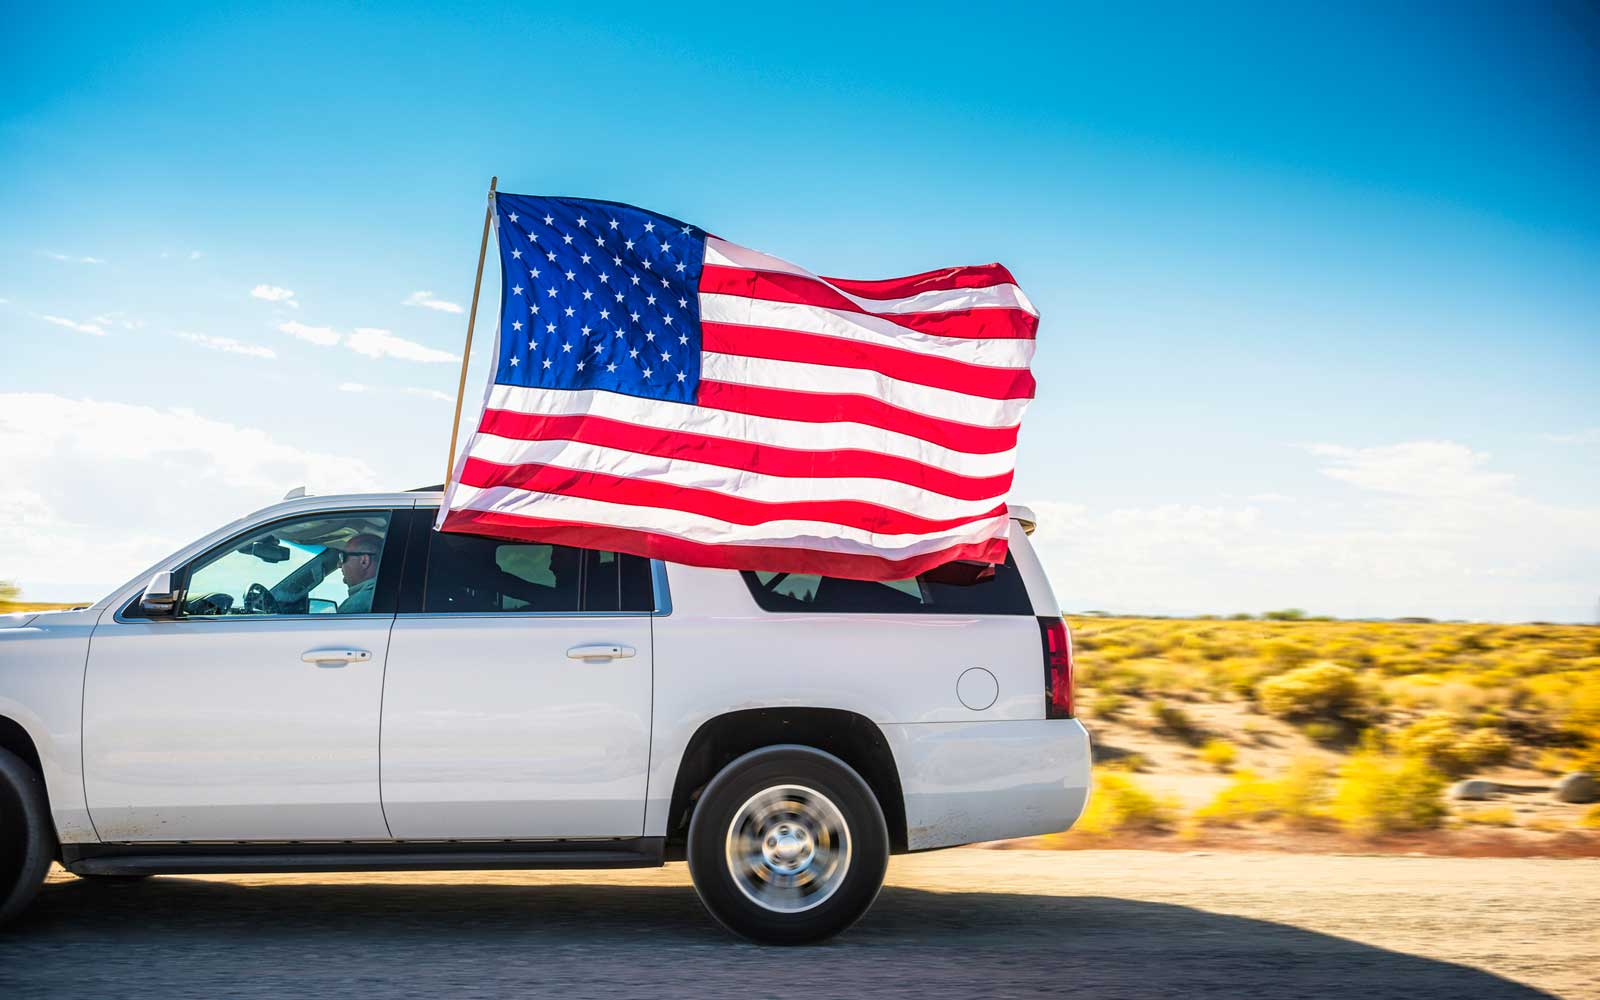 White SUV driving with passenger holding American flag